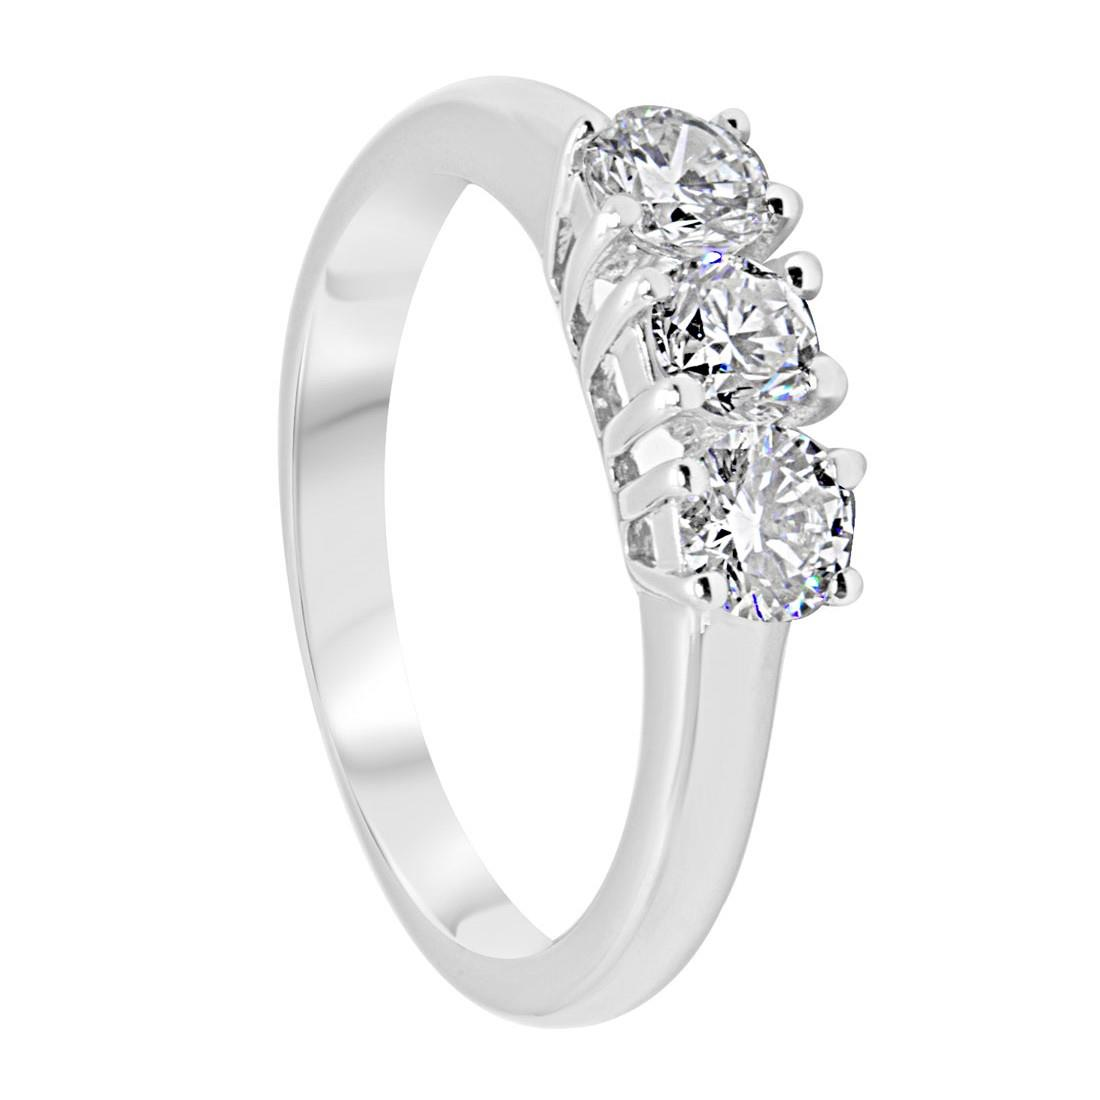 Anello trilogy in oro bianco con diamanti 0,85 ct mis 13 - ORO&CO